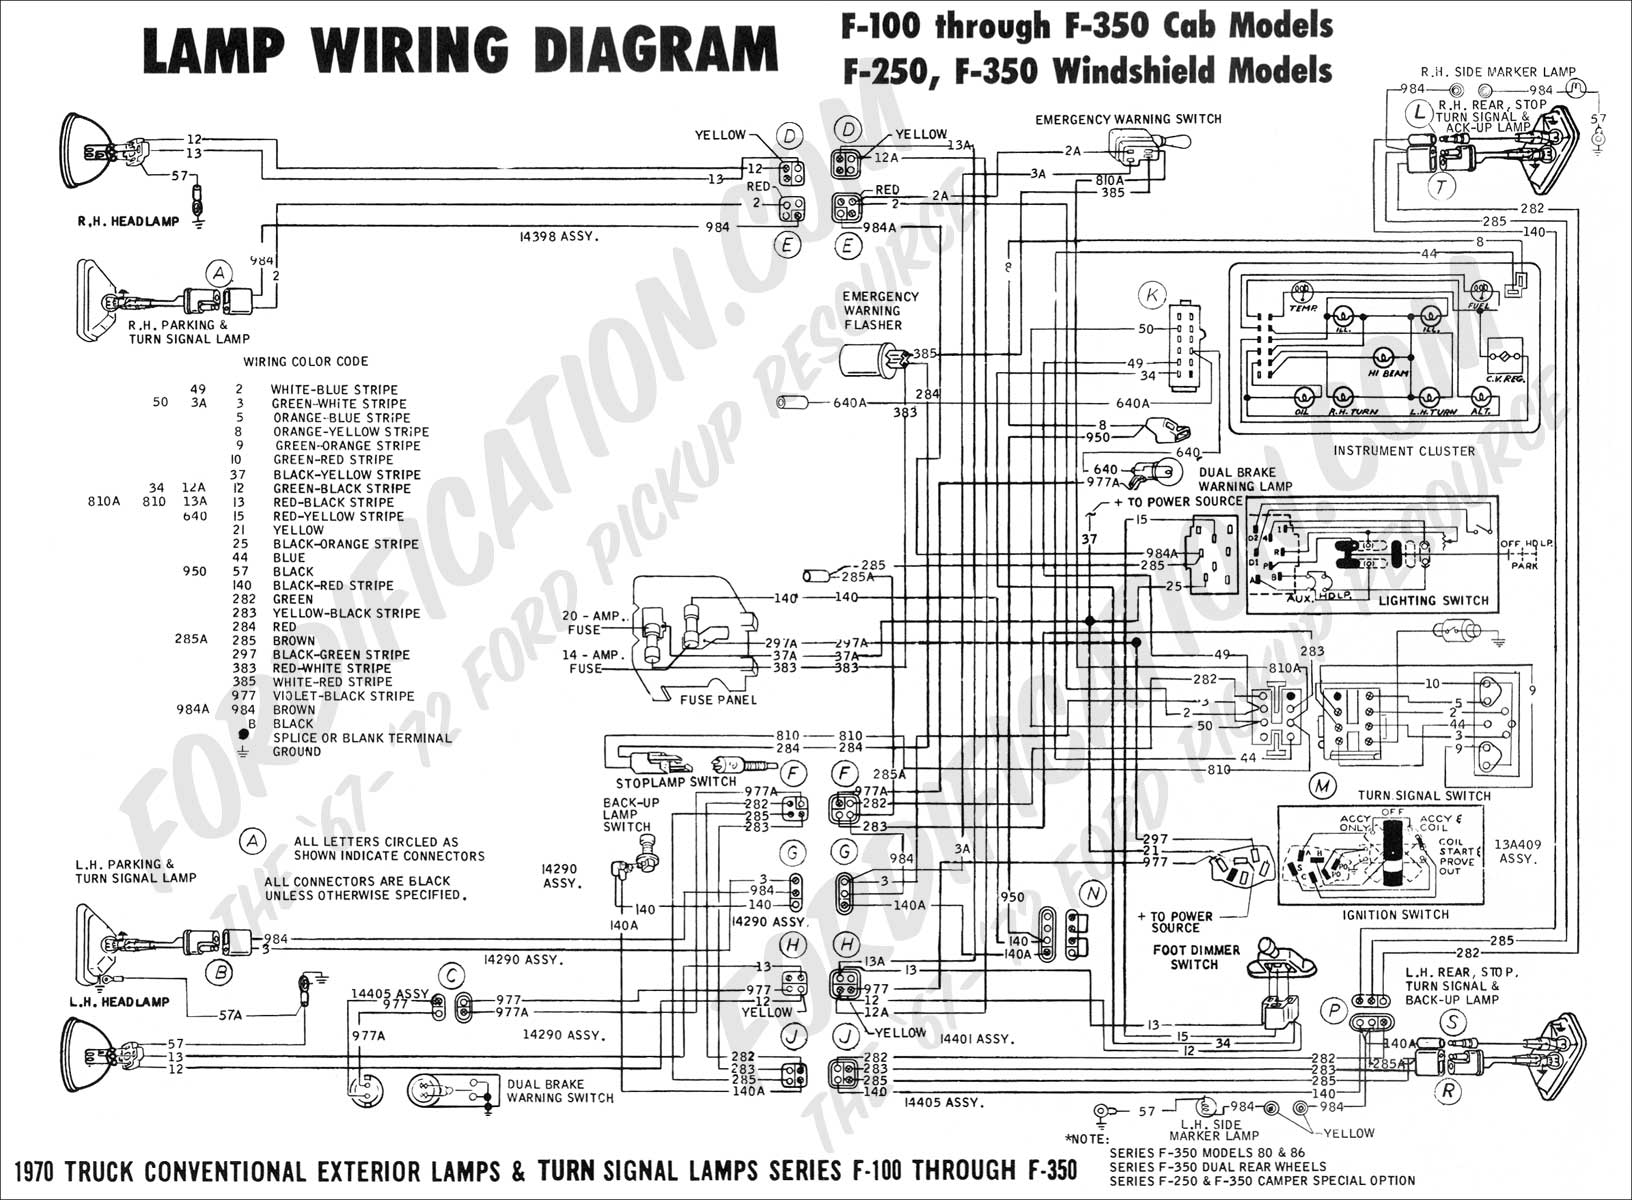 Chevy Silverado 7 Pin Trailer Plug Wiring Diagram as well 1291890 Turn Signal Cam Wiring as well 412502 Trailer Tow Oem Wire Harness Frustration likewise Automotive Ignition Wiring Harness additionally Toyota Trailer Harness Module. on tow hitch wiring diagram